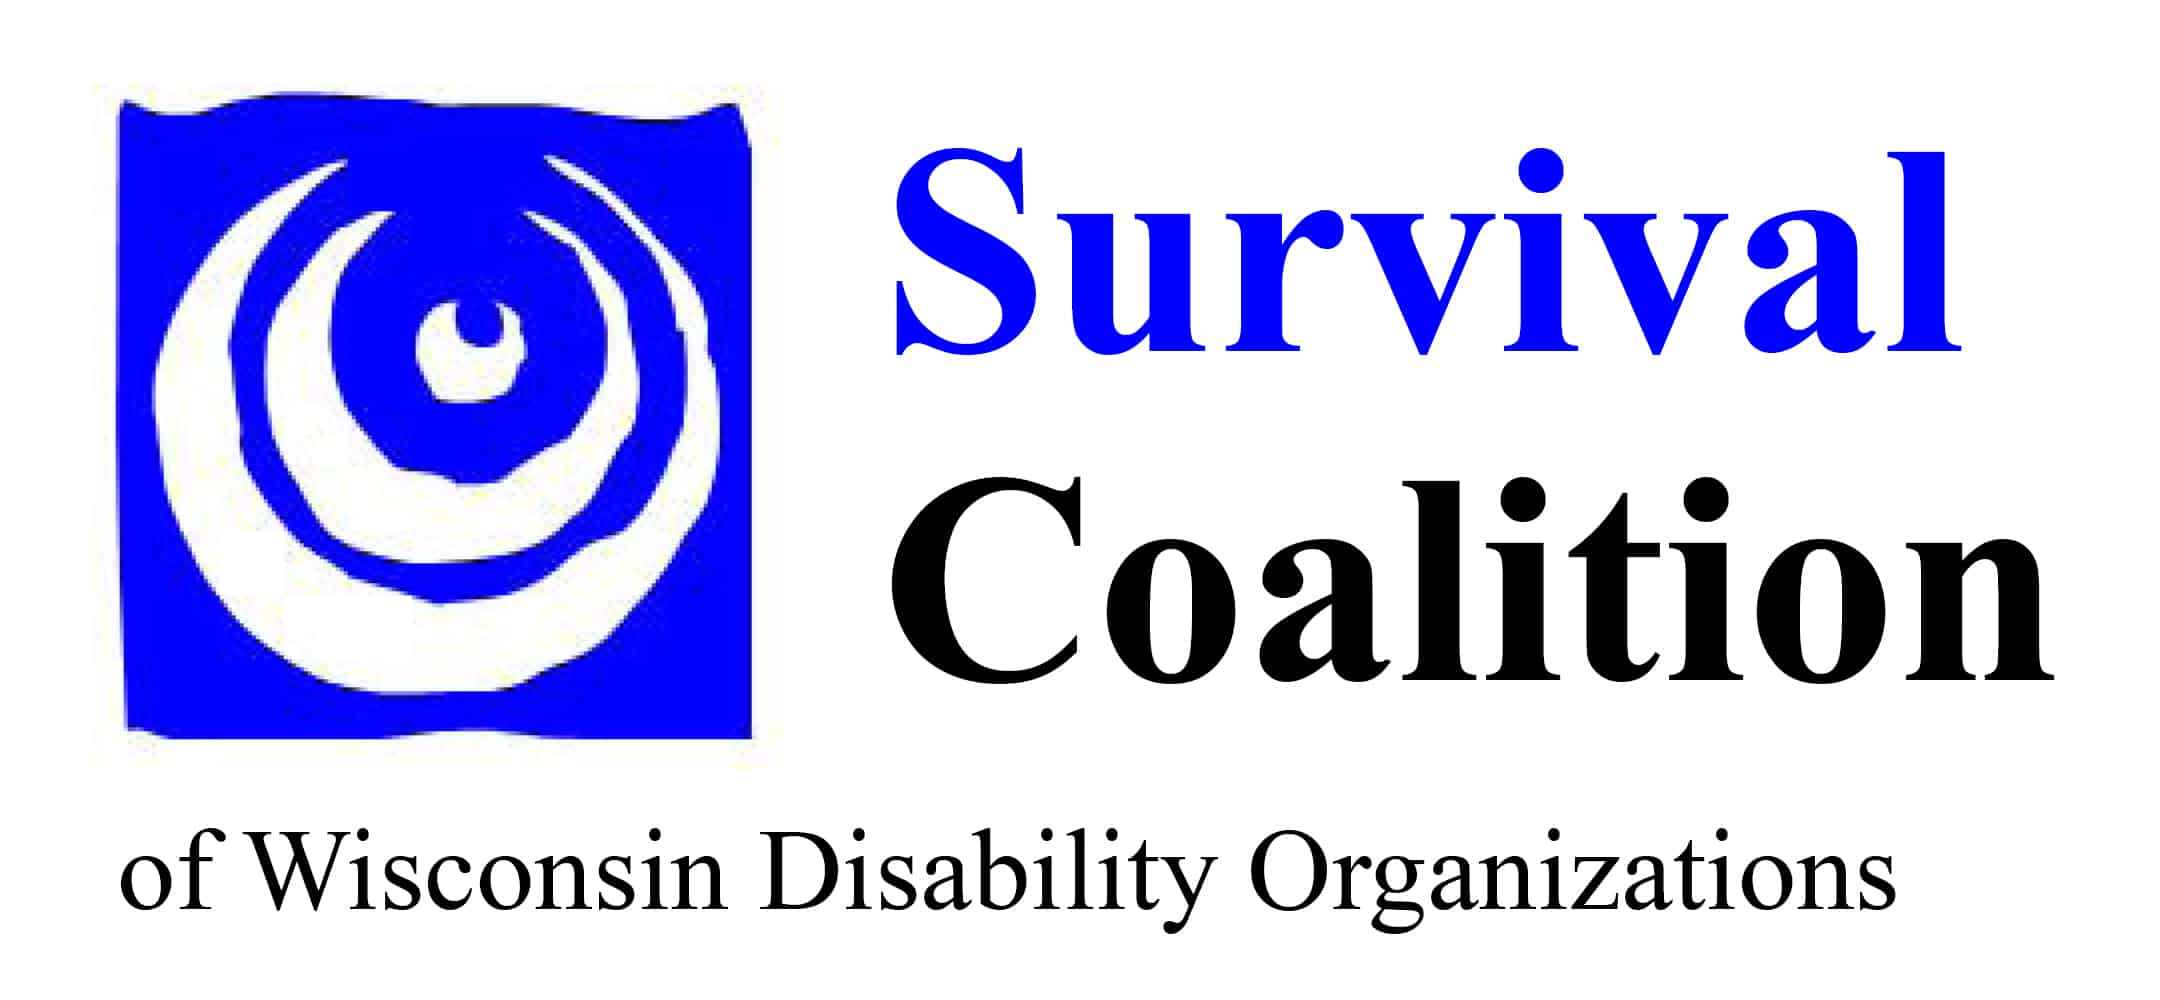 Survival Coalition of Wisconsin Disability Organizations Logo